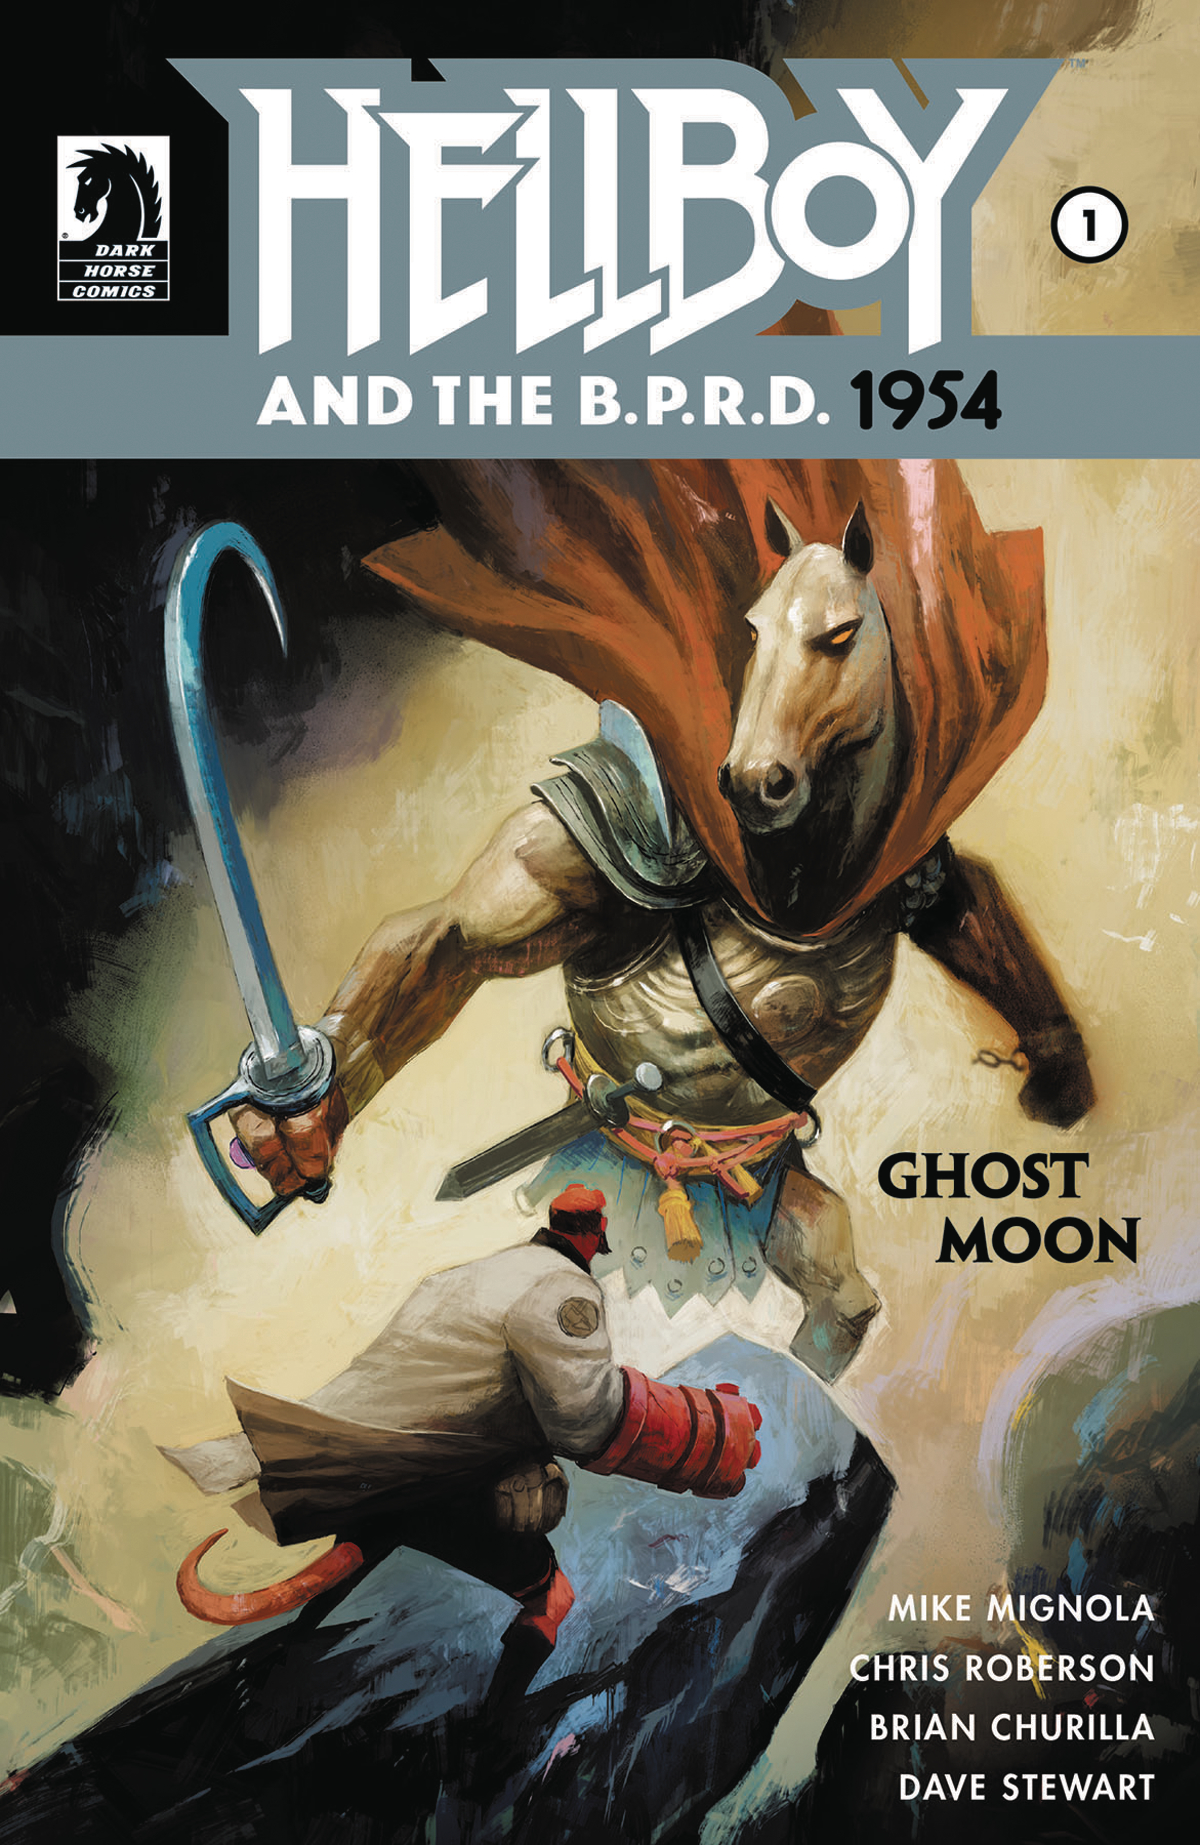 Hellboy and the B.P.R.D. 1954: Ghost Moon #1 Cover